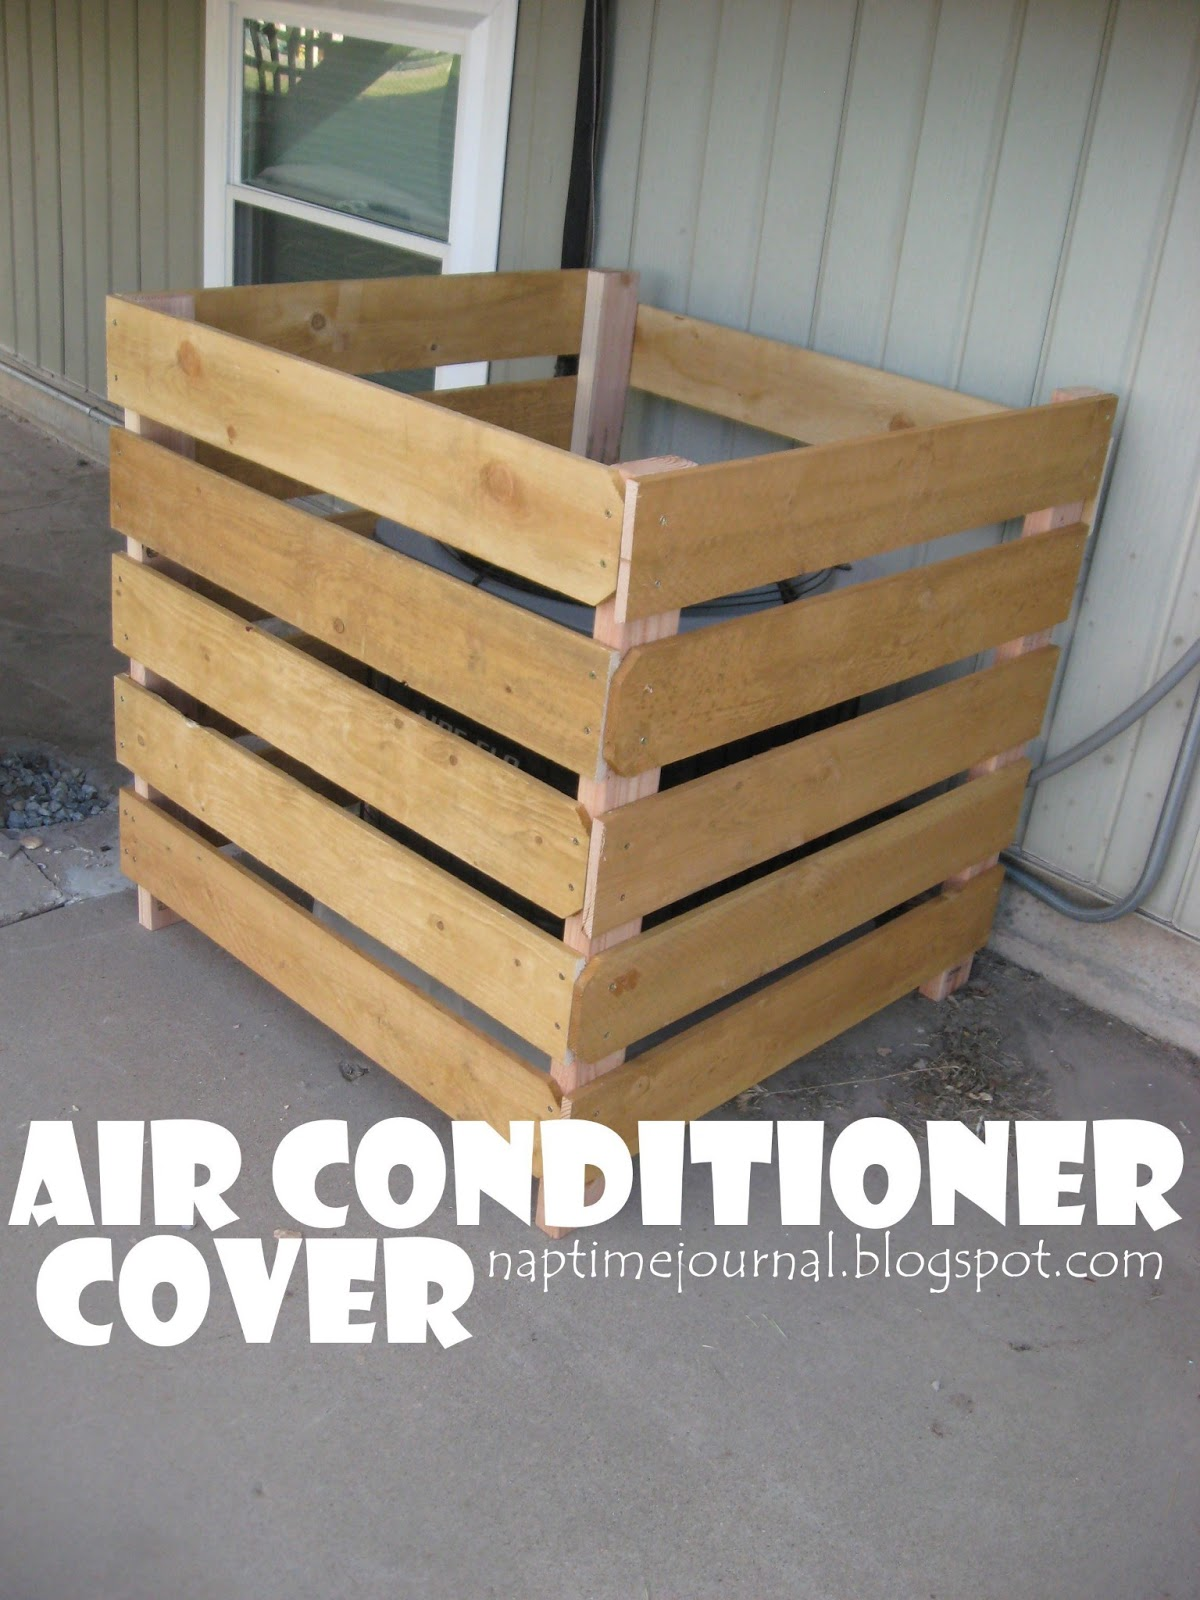 Nap Time Journal Air Conditioner Cover